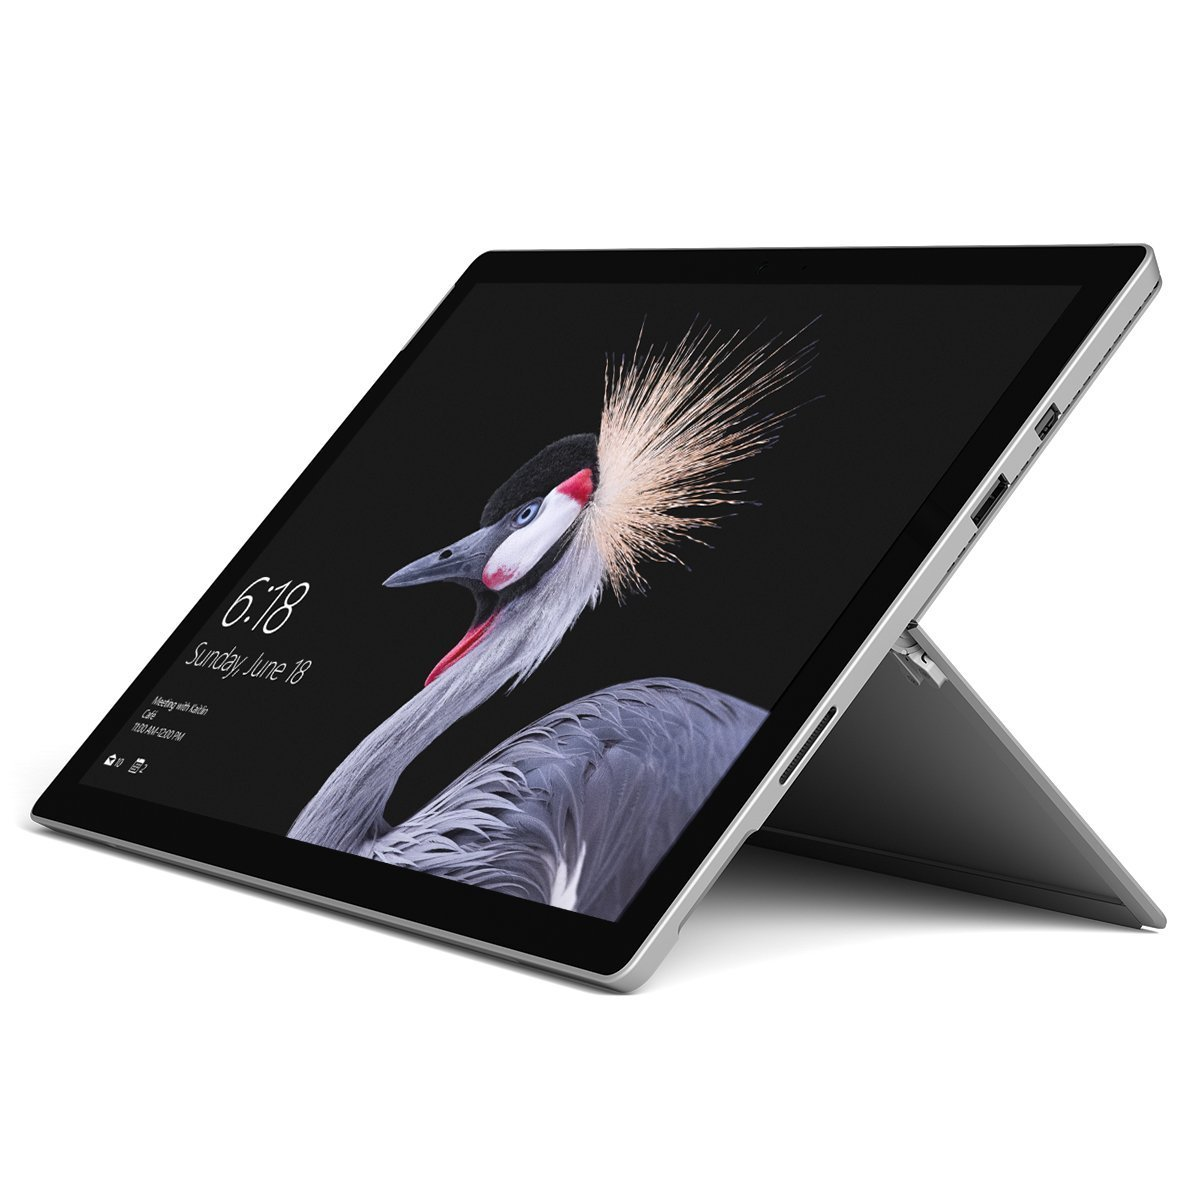 Image of Microsoft Surface Pro (2017) i7 1TB 16GB Ram FKL-00001 [without Keyboard]